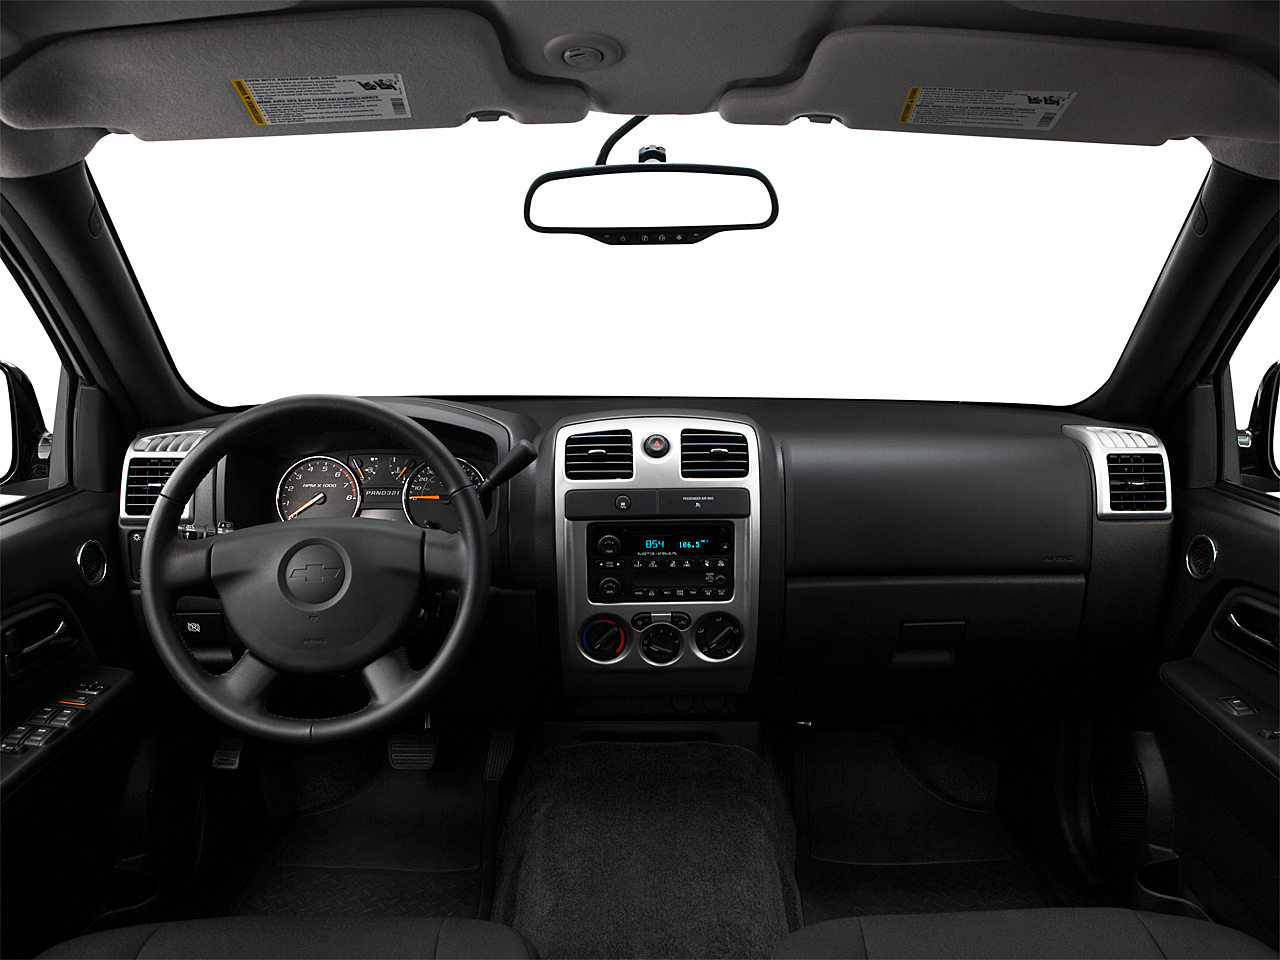 2009 Chevrolet Colorado LT, centered wide dash shot